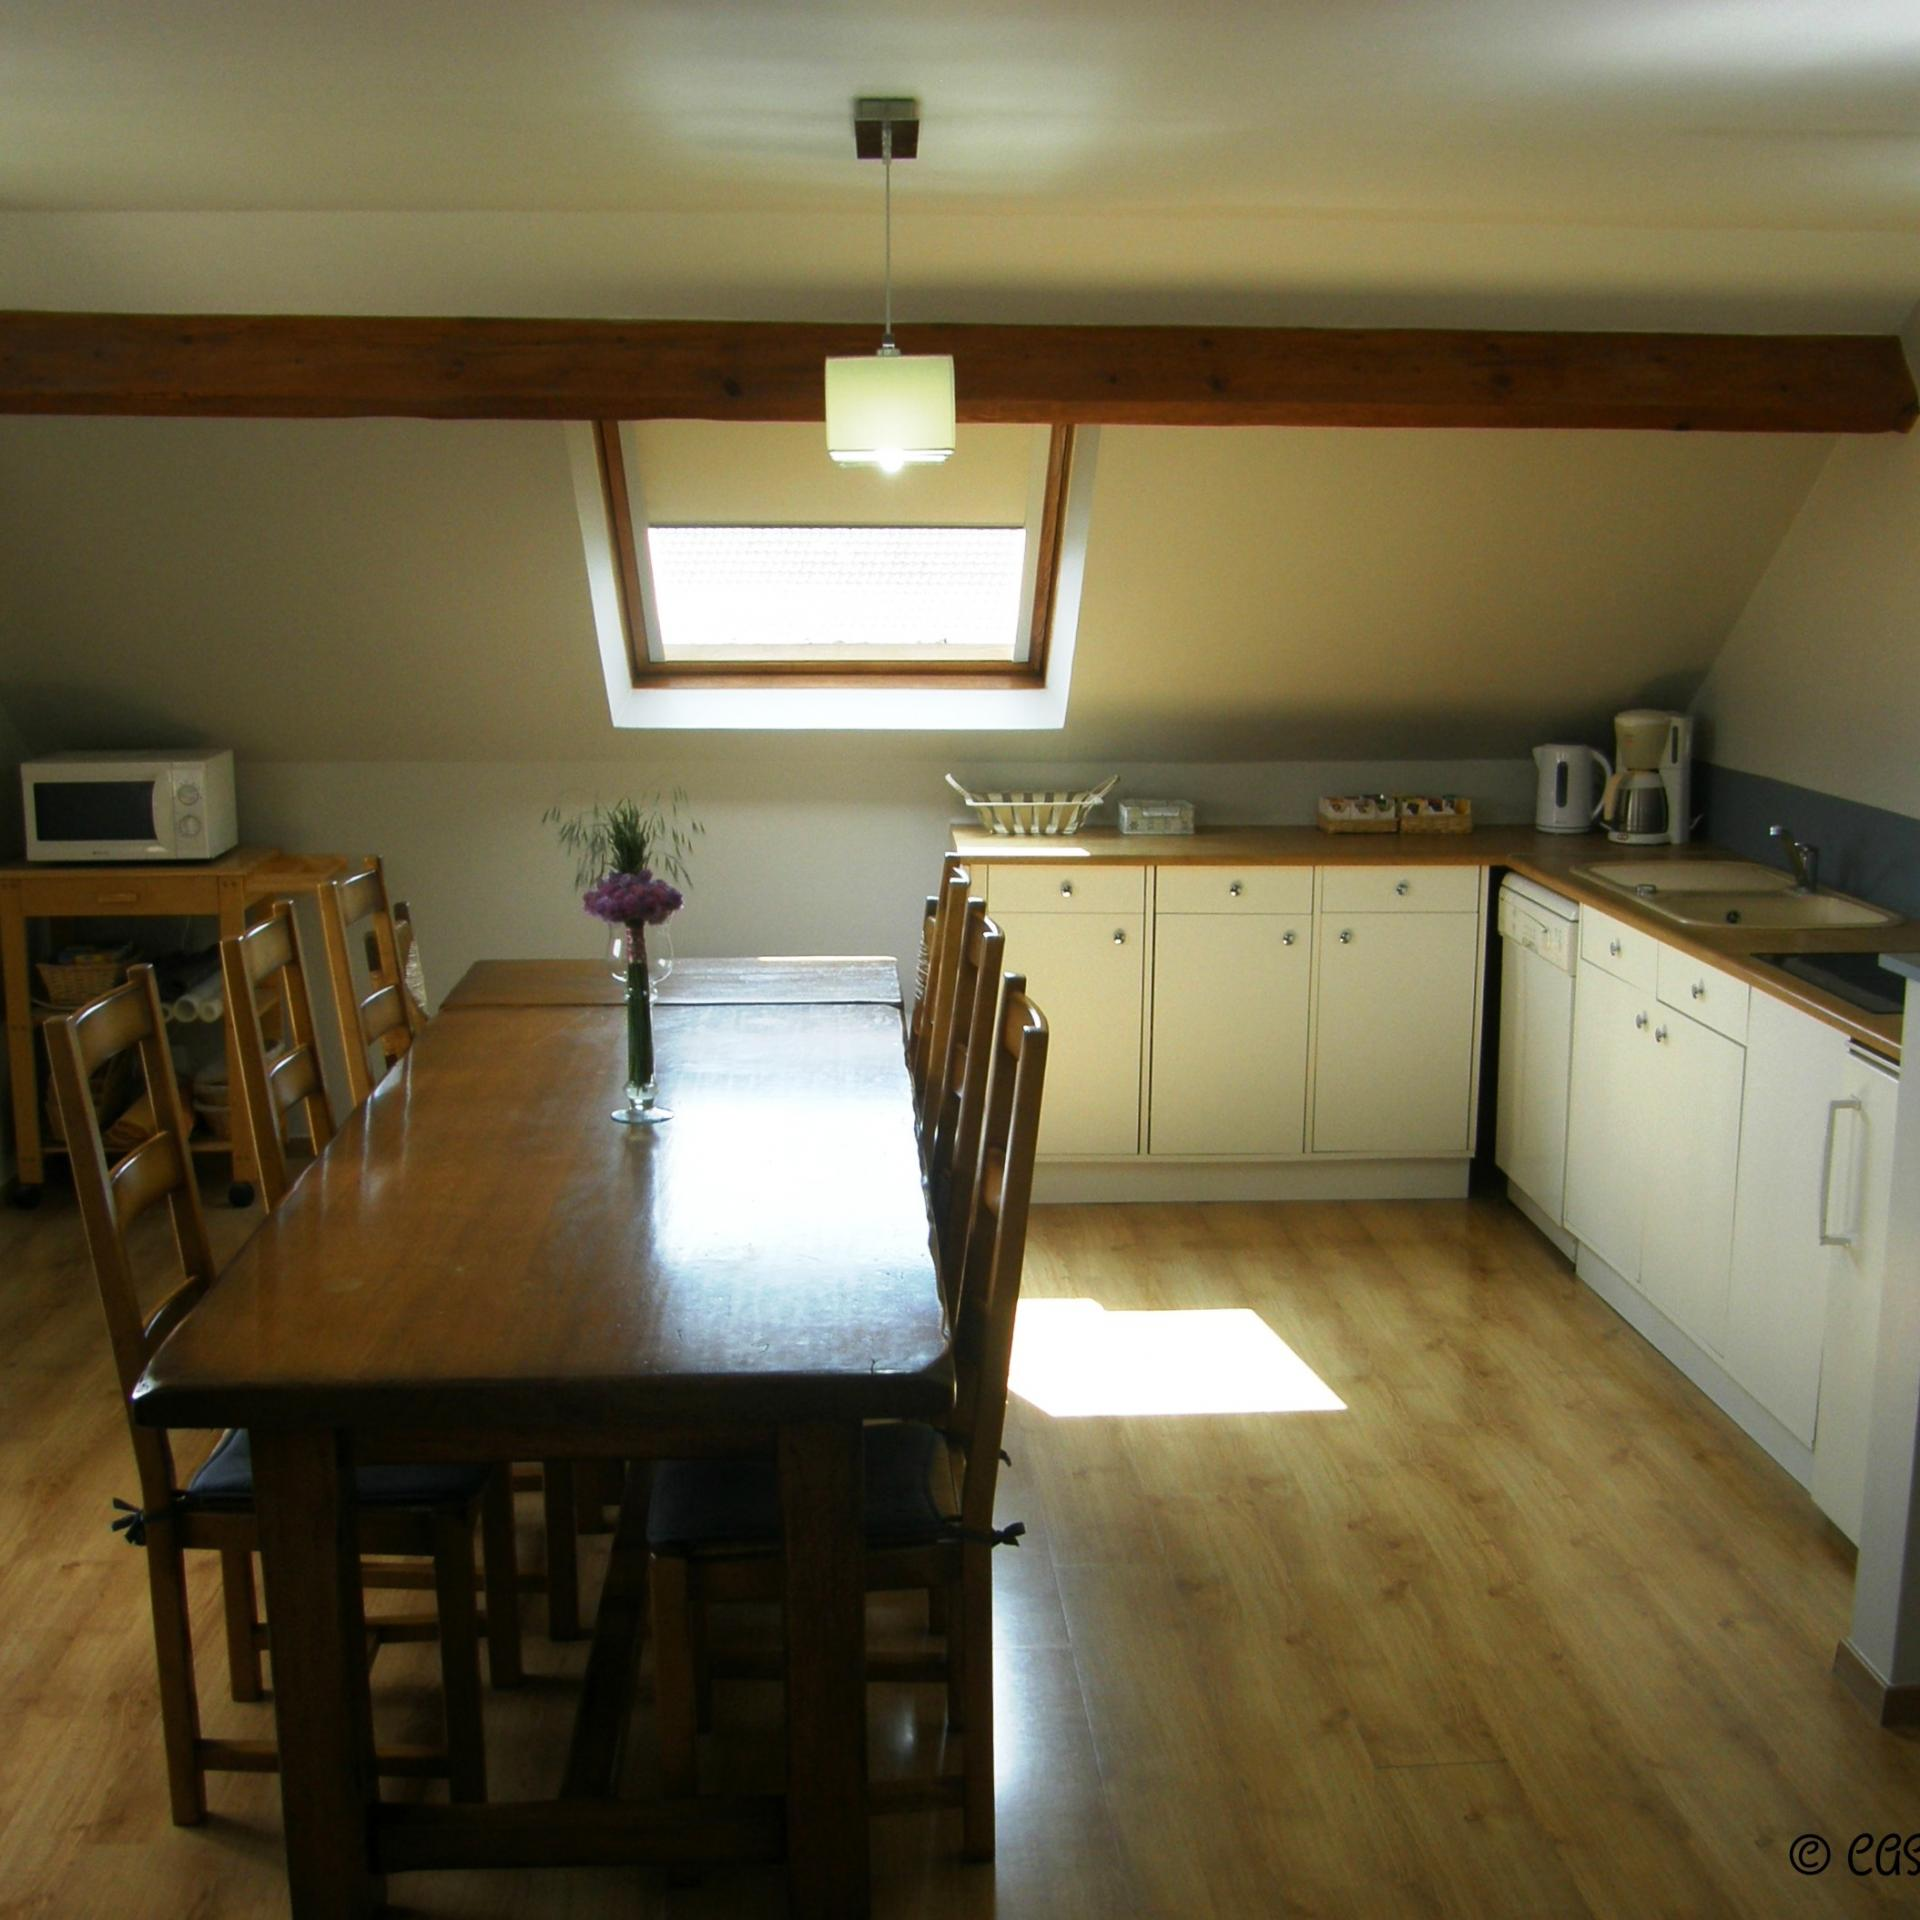 The linving room and the kitchen